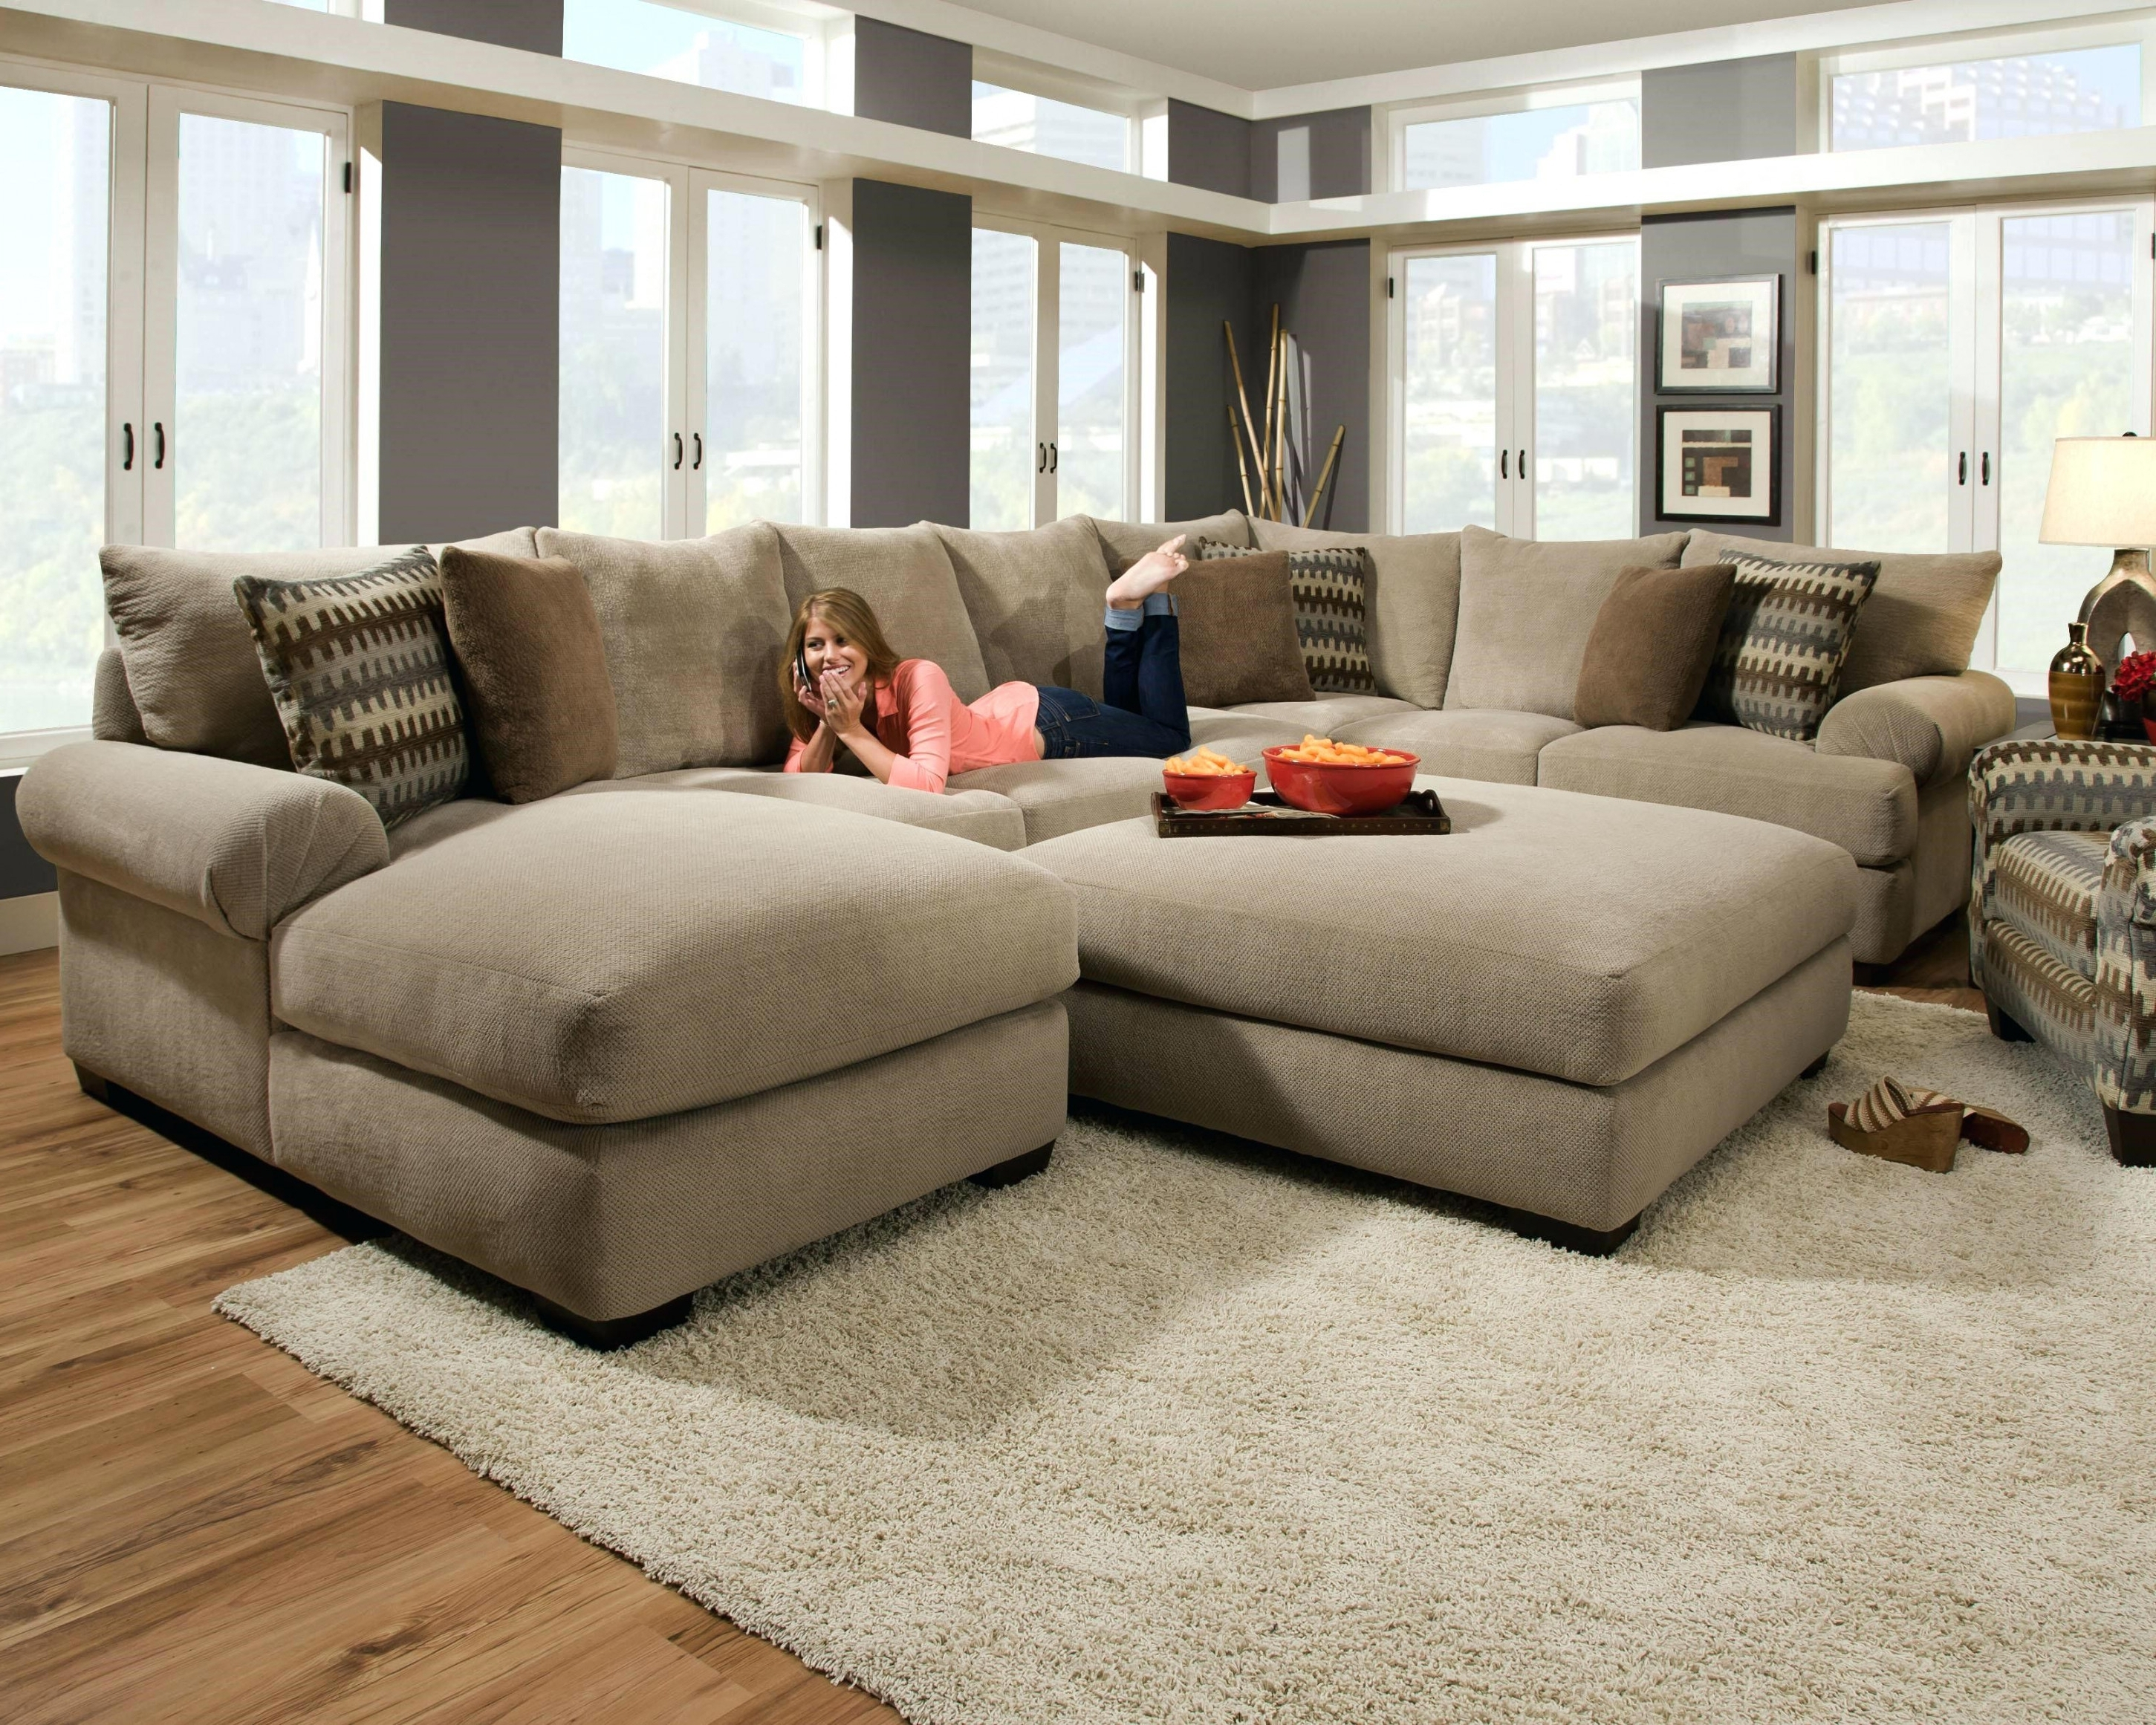 Sectional Sofas Big Lots For Recent Big Lots Sofas (View 10 of 15)